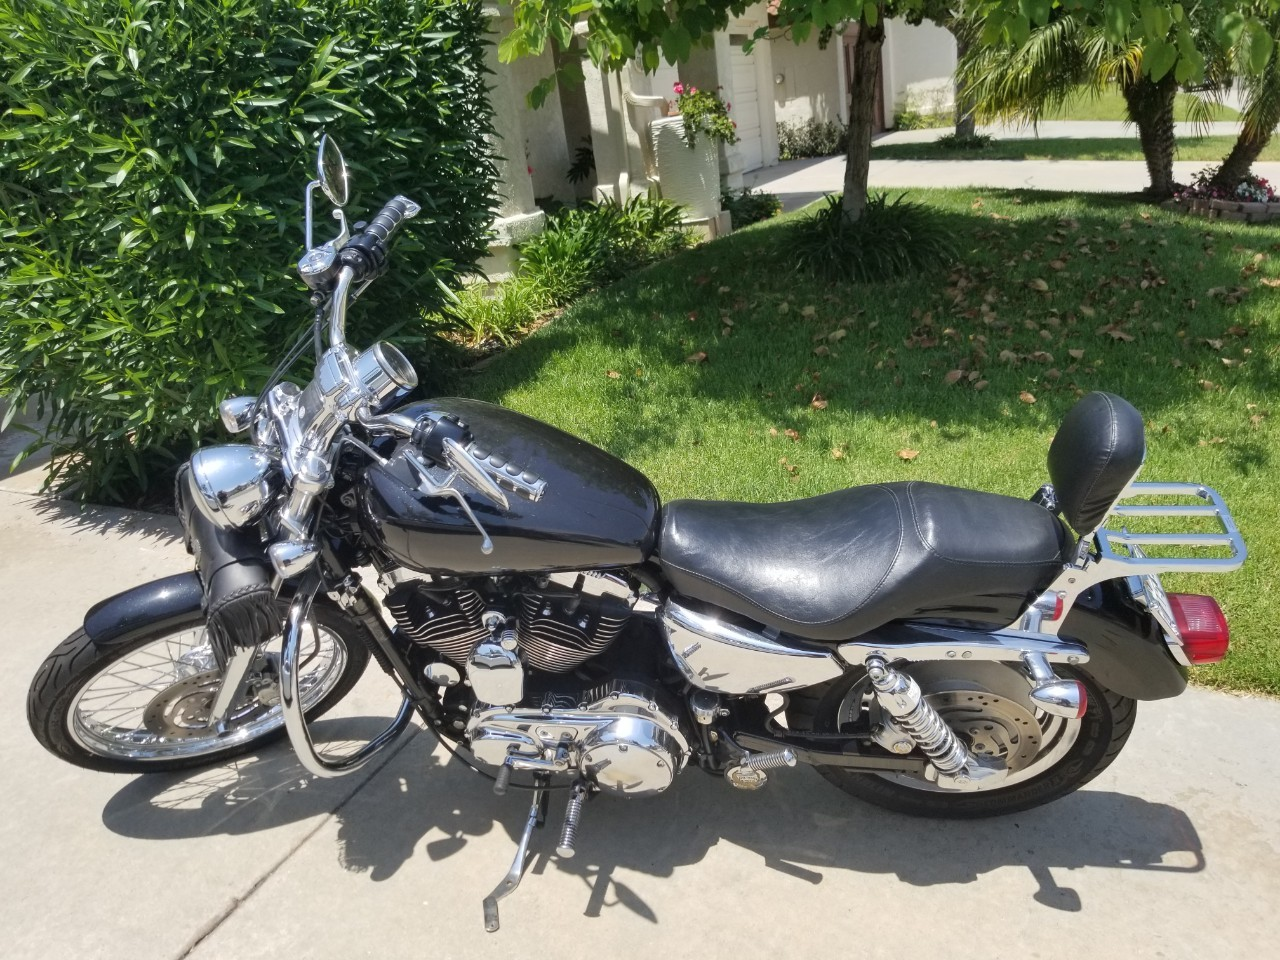 Harley Davidson Xl 1200x Sportster Forty Eight For Sale 1649 Cover Motor Super Size Motorcycles